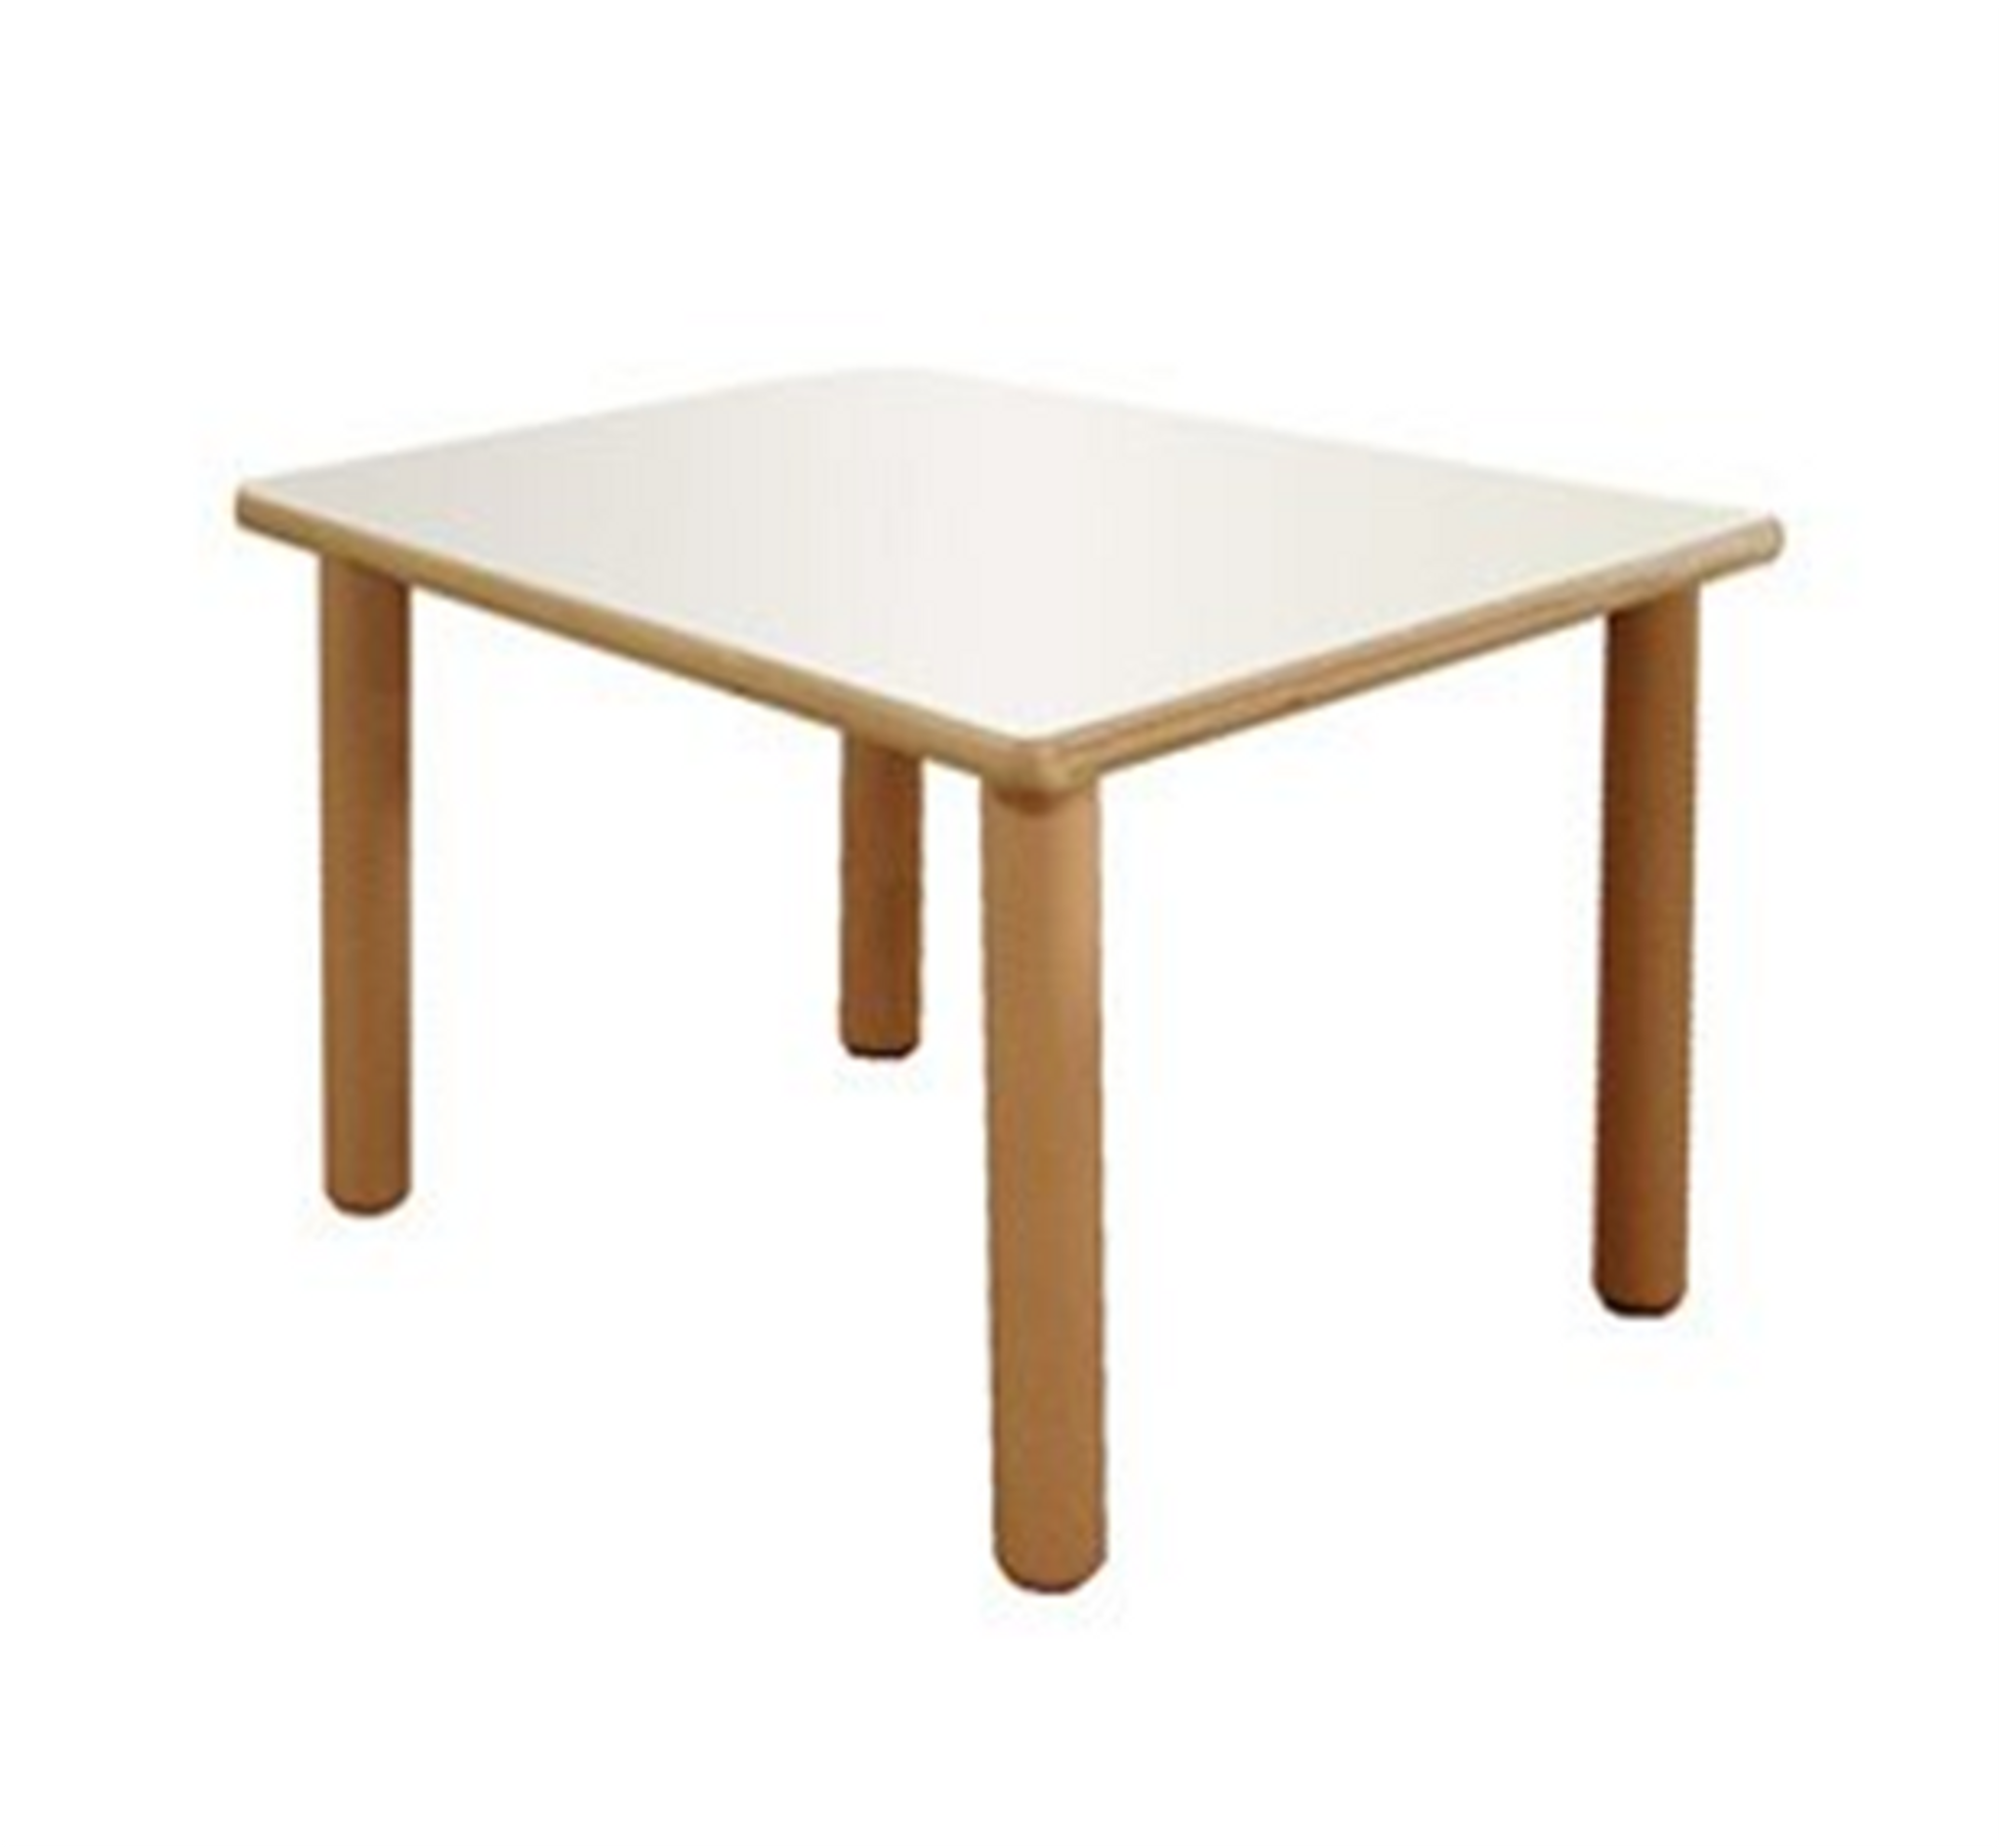 Square Table 55W x 55D (cm) - Multiple Heights Available